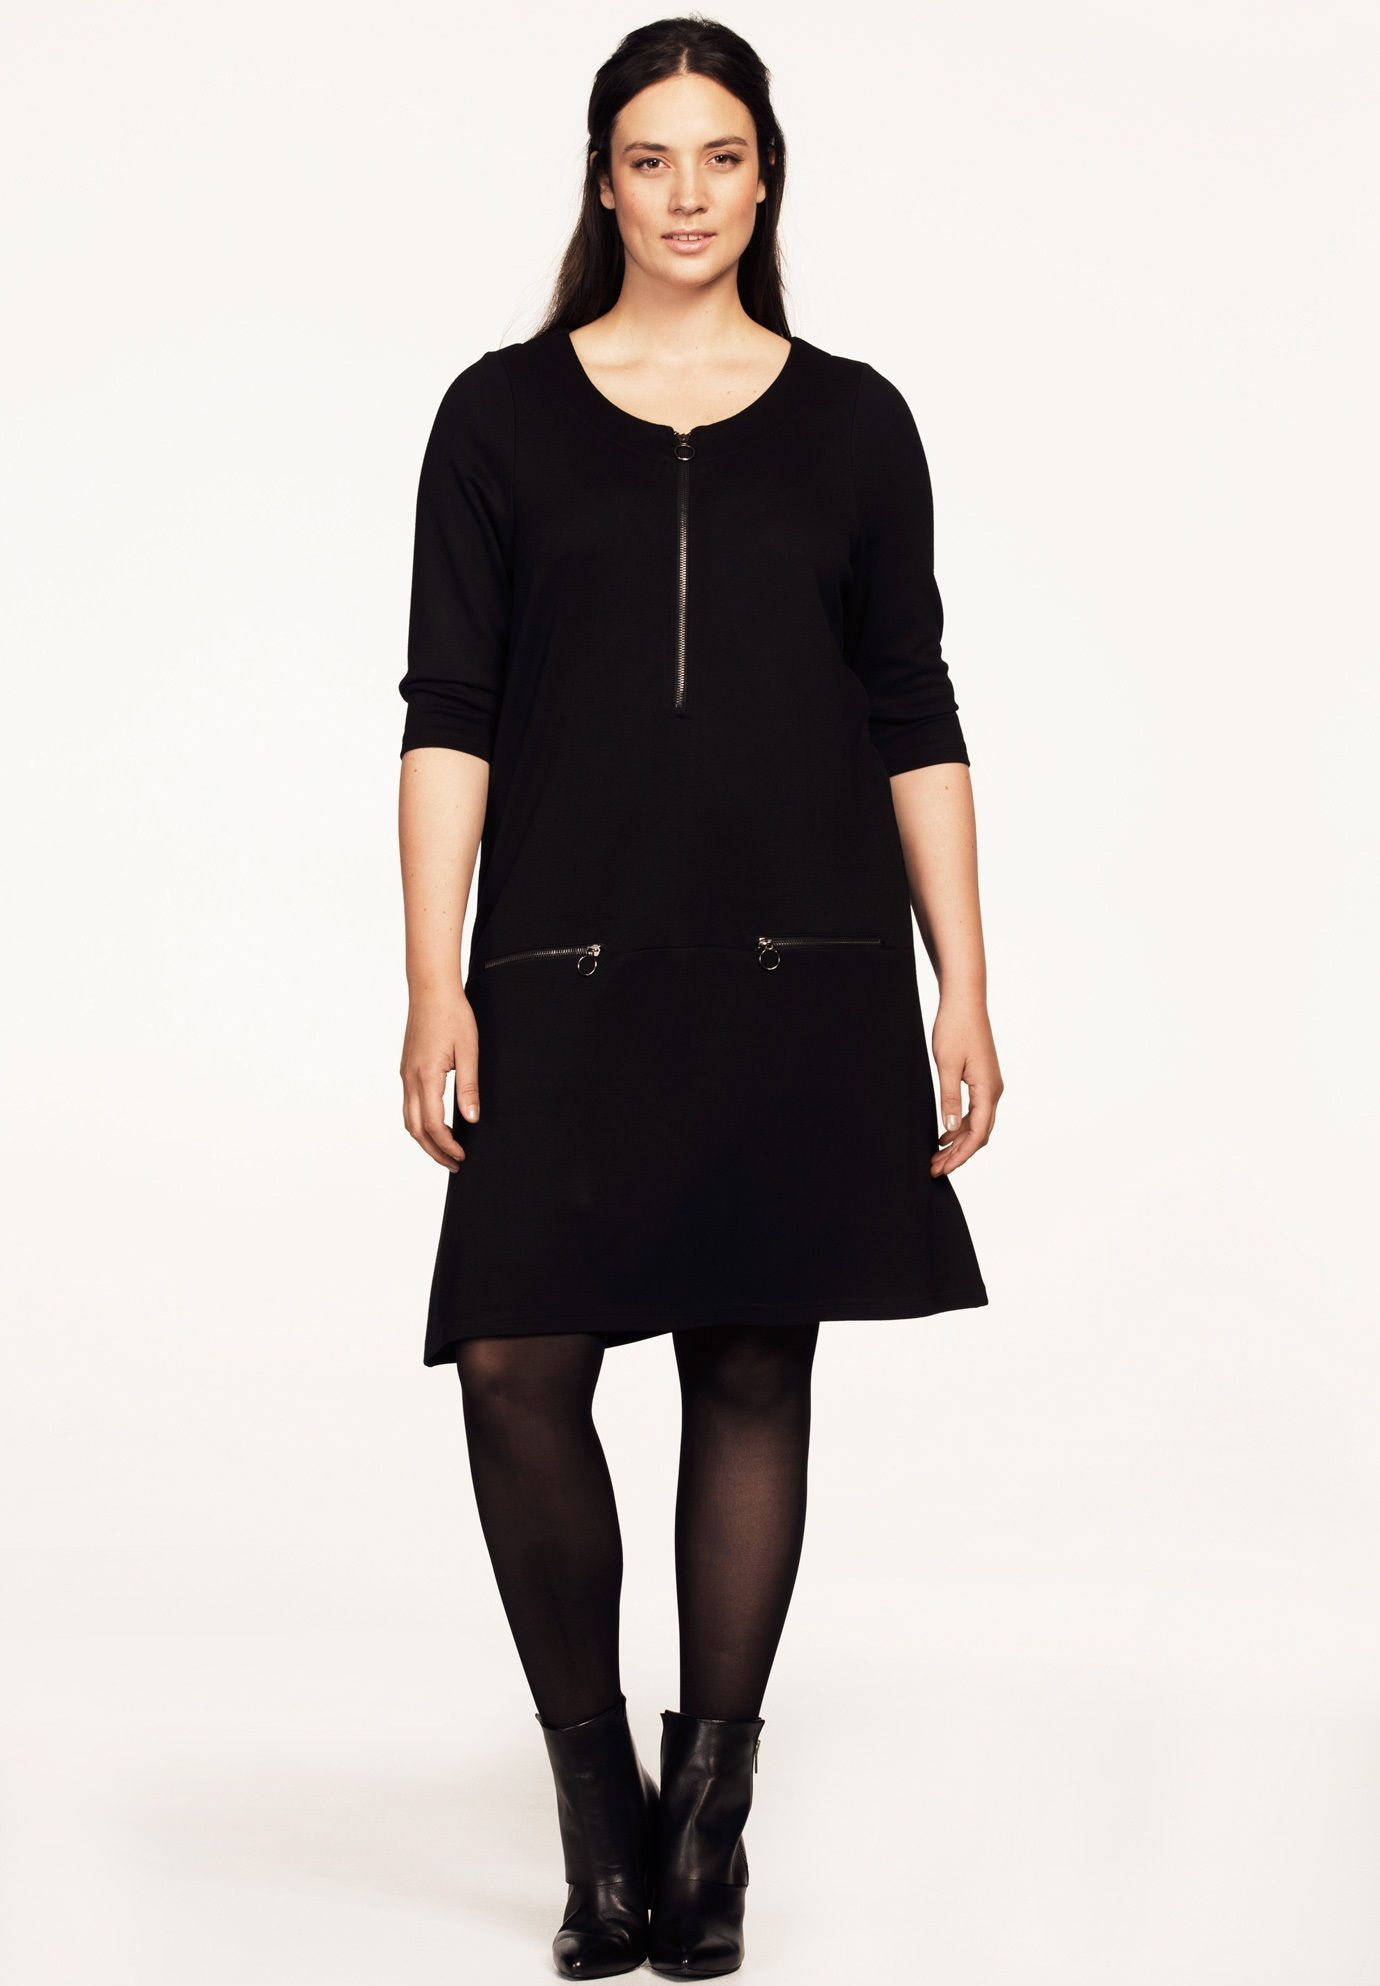 Zip Front 3 4 Sleeve Dress by ellos Women s Plus Size Clothing